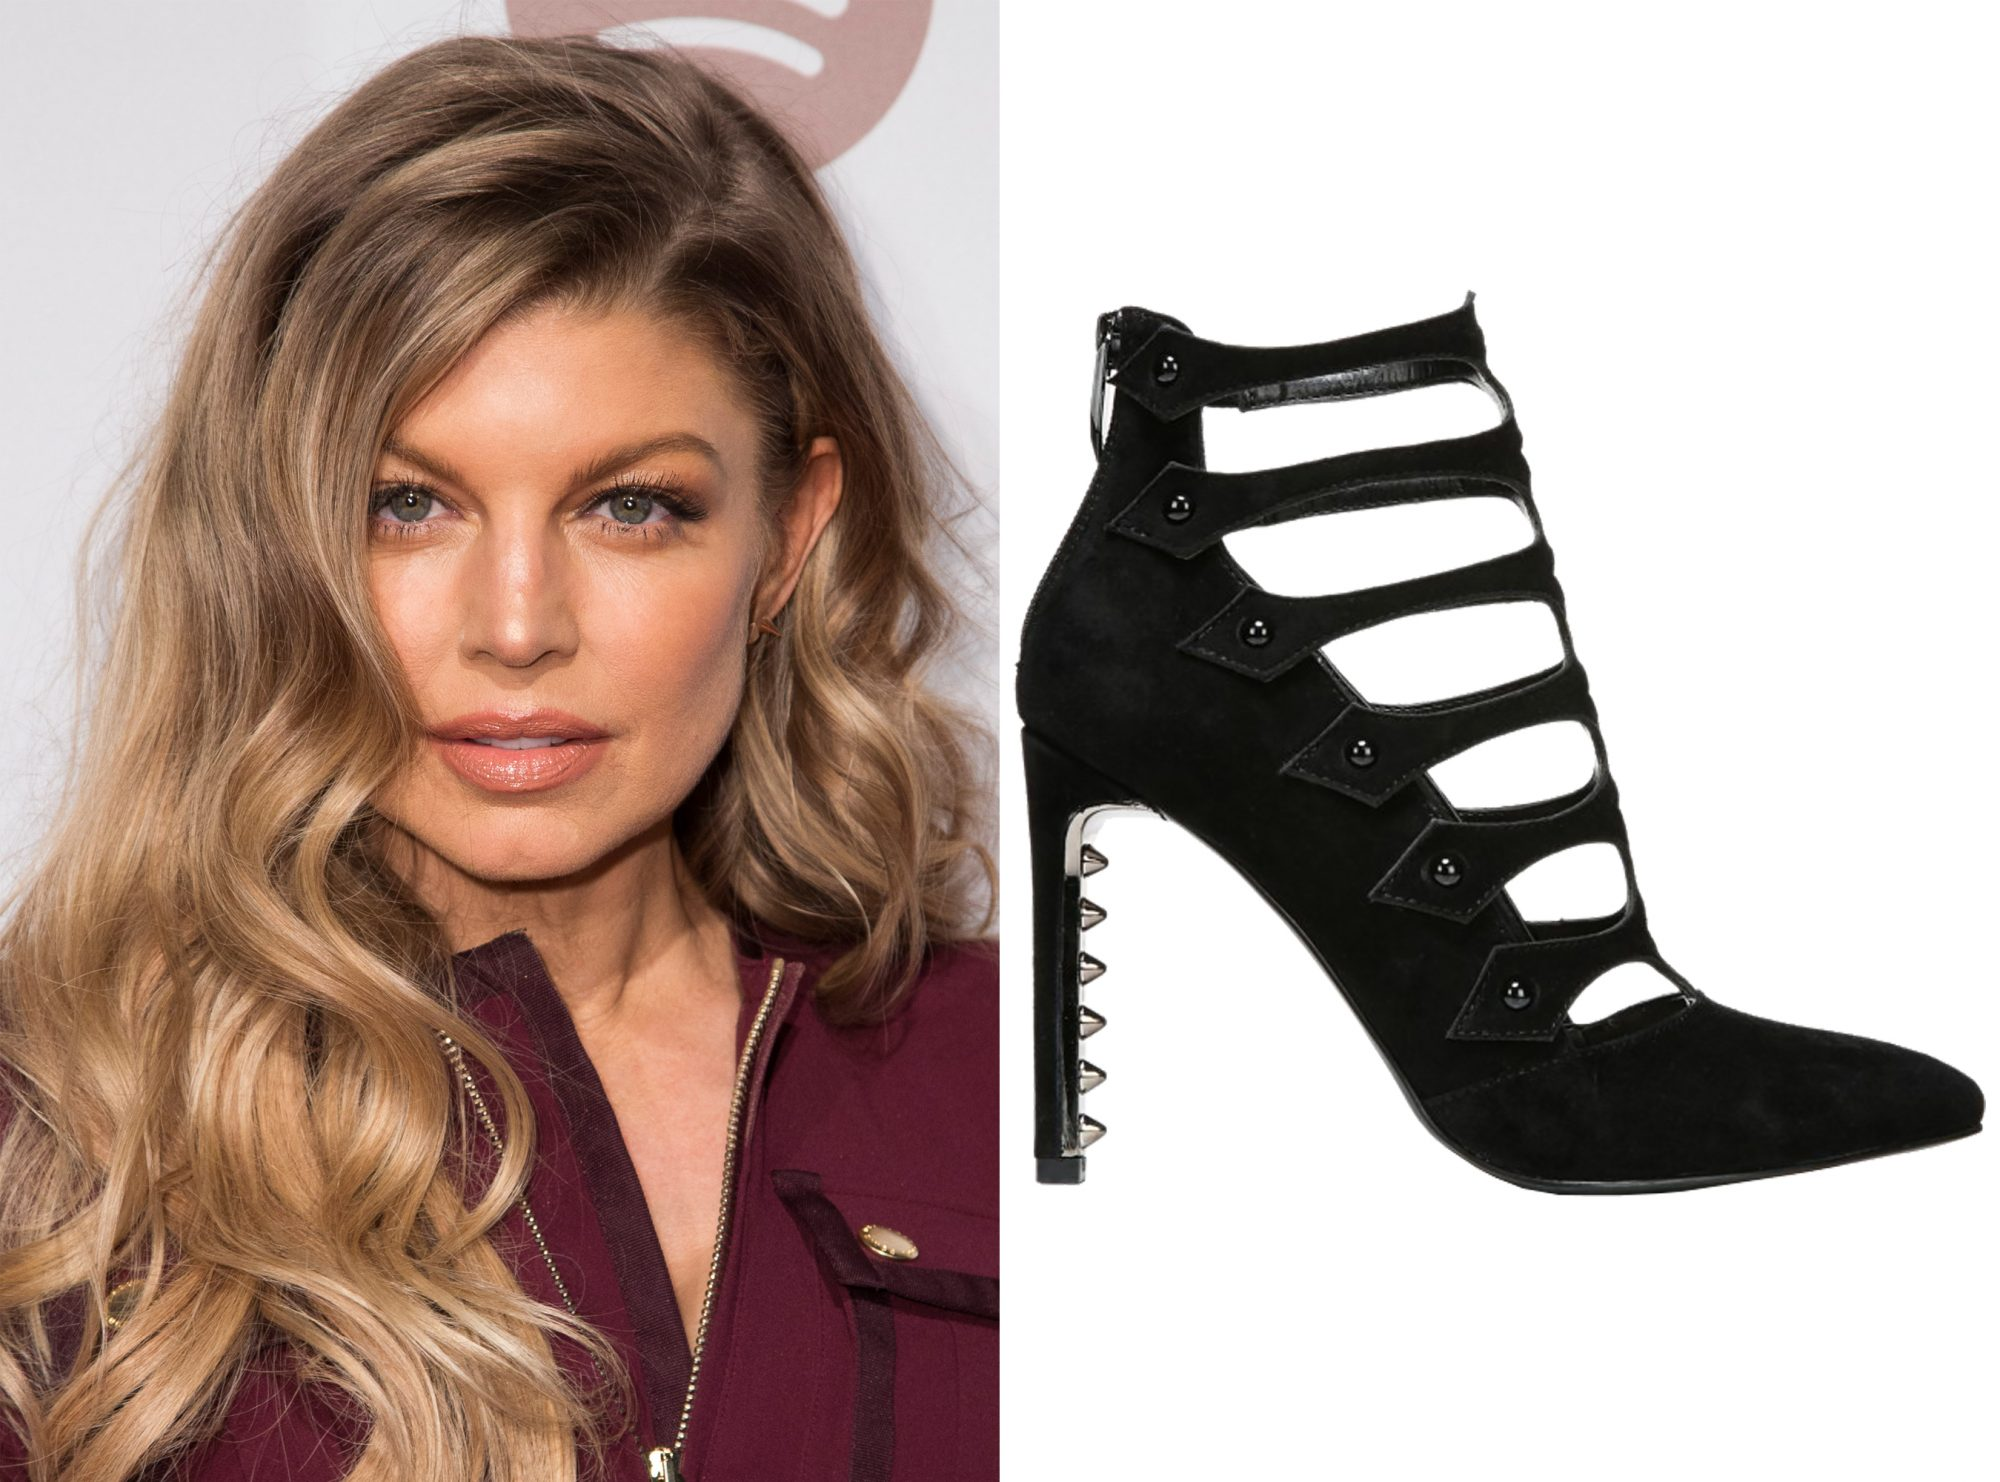 FERGIE FOOTWEAR and FERGALICIOUS: Fergie